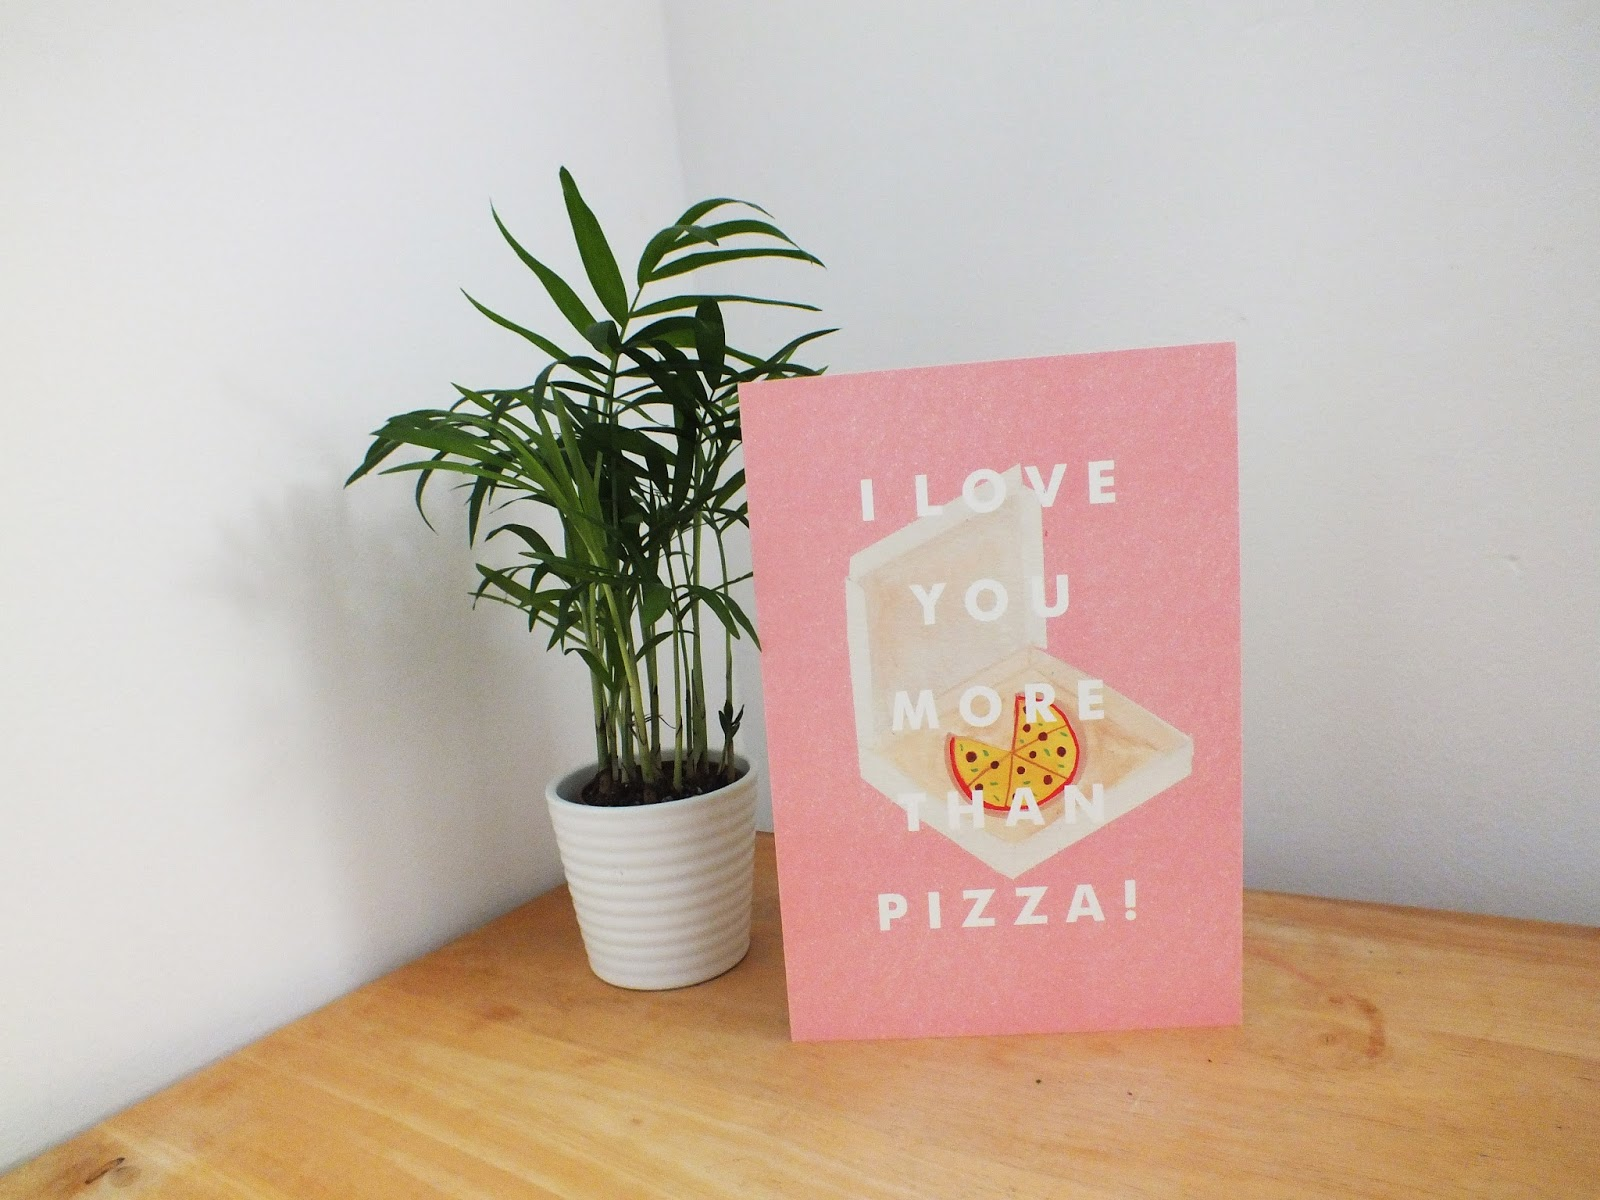 https://www.papier.com/search?utf8=✓&q=i+love+pizza